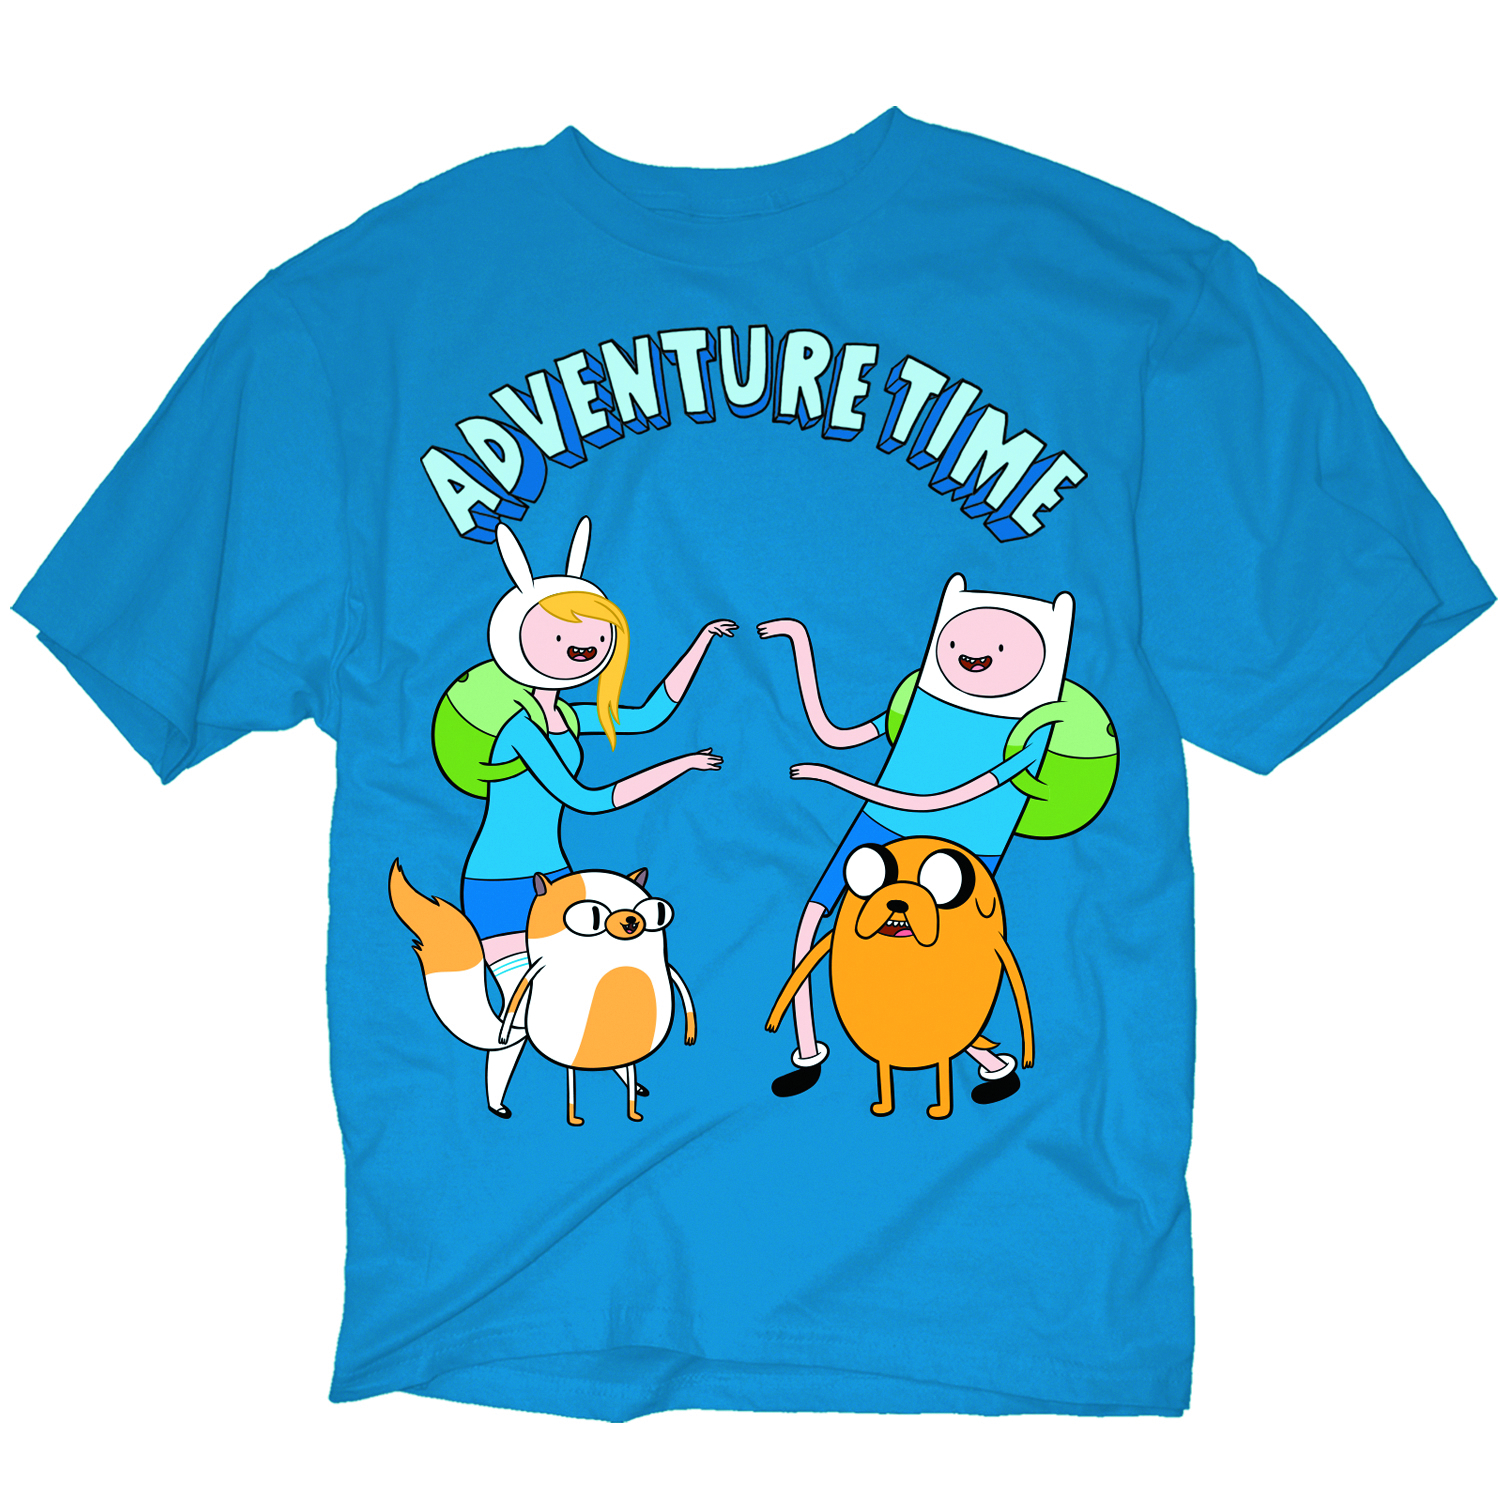 ADVENTURE TWINS PX BLUE T/S LG